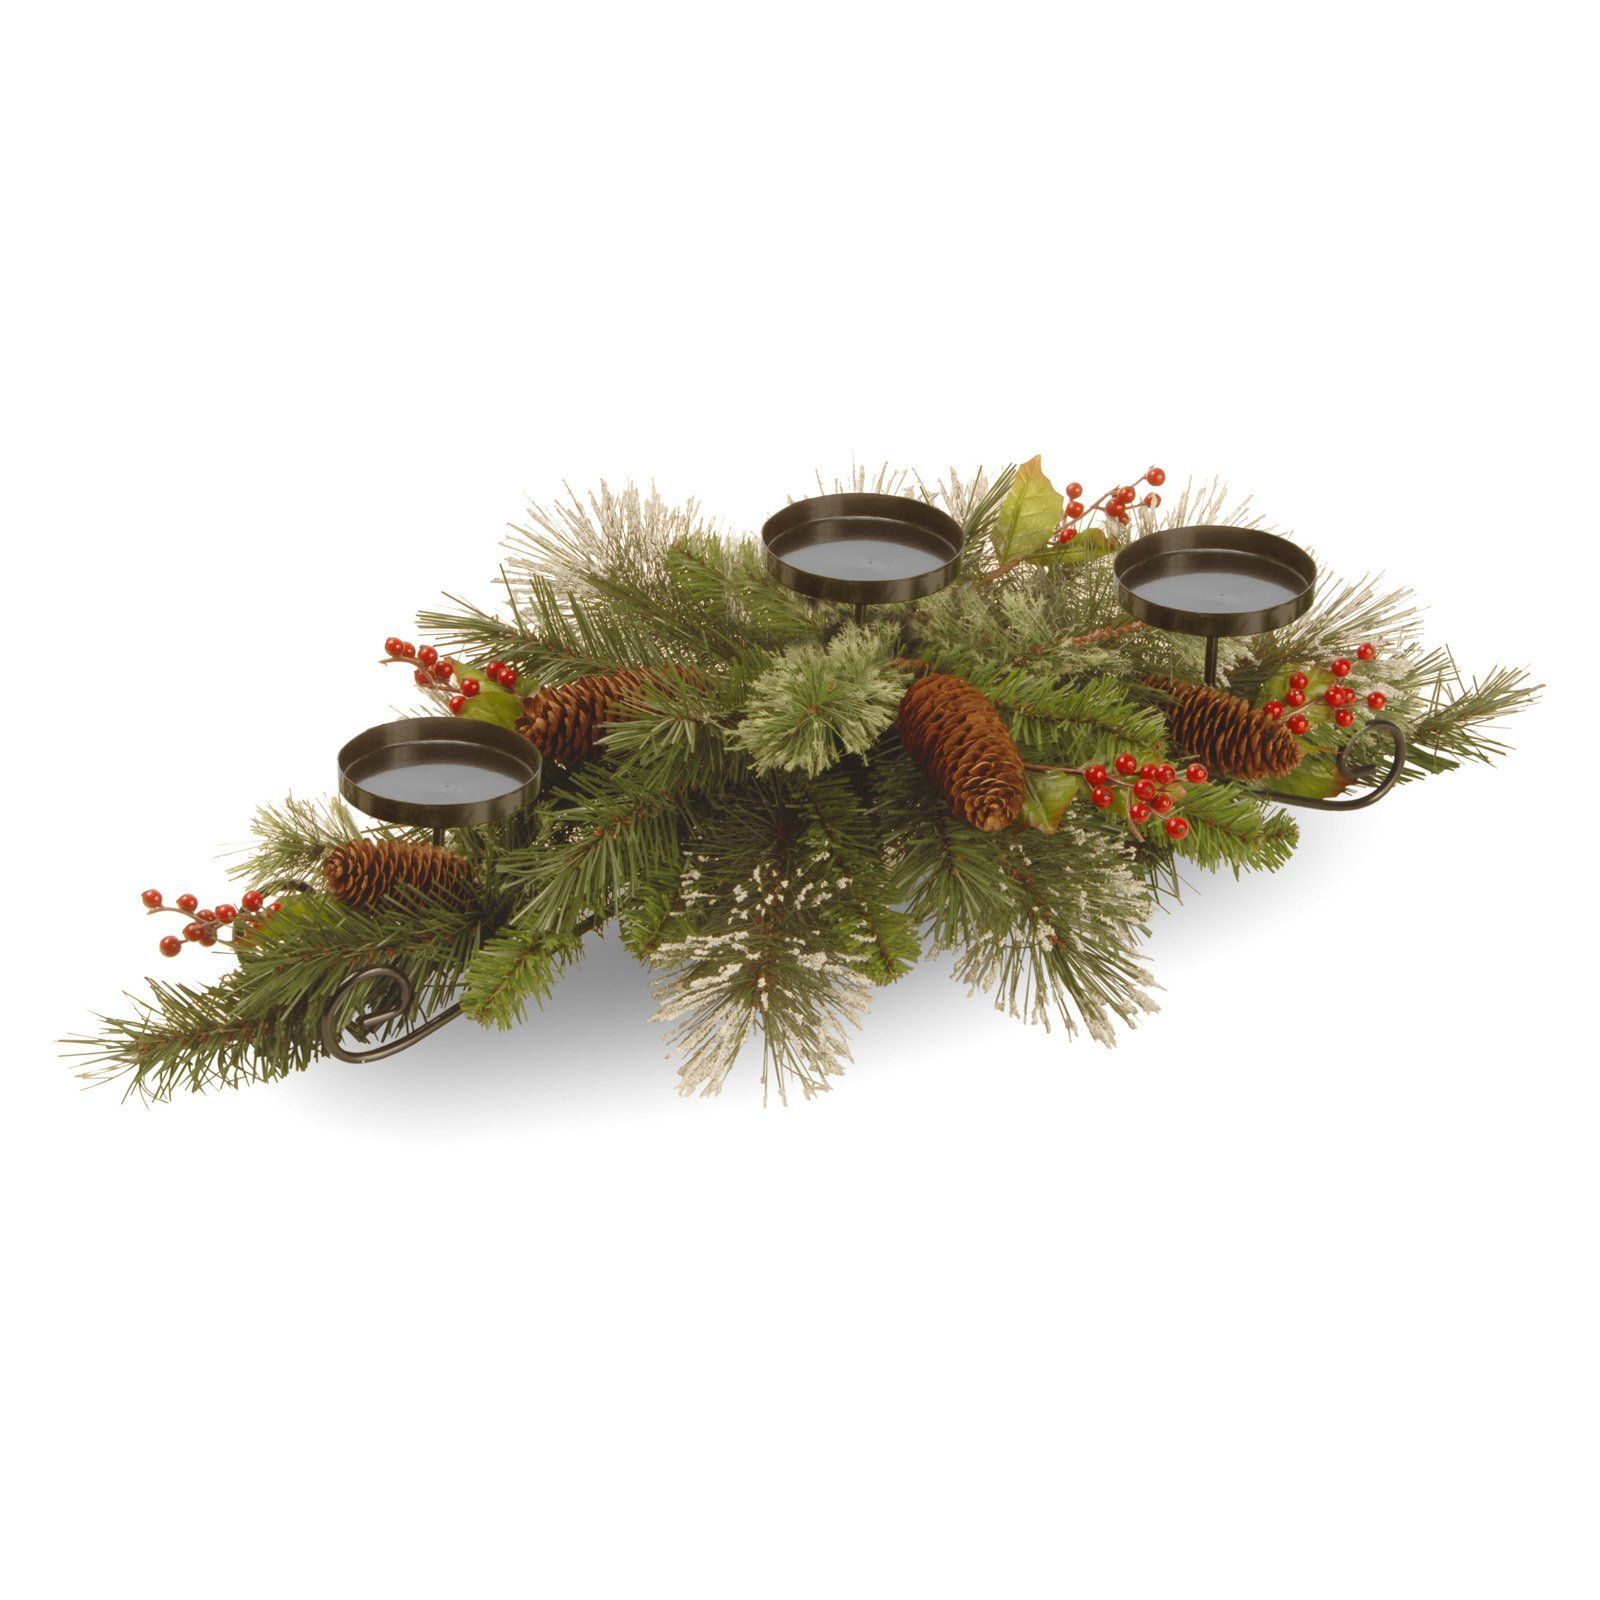 National Tree pany Wintry Pine Collection Centerpiece with 3